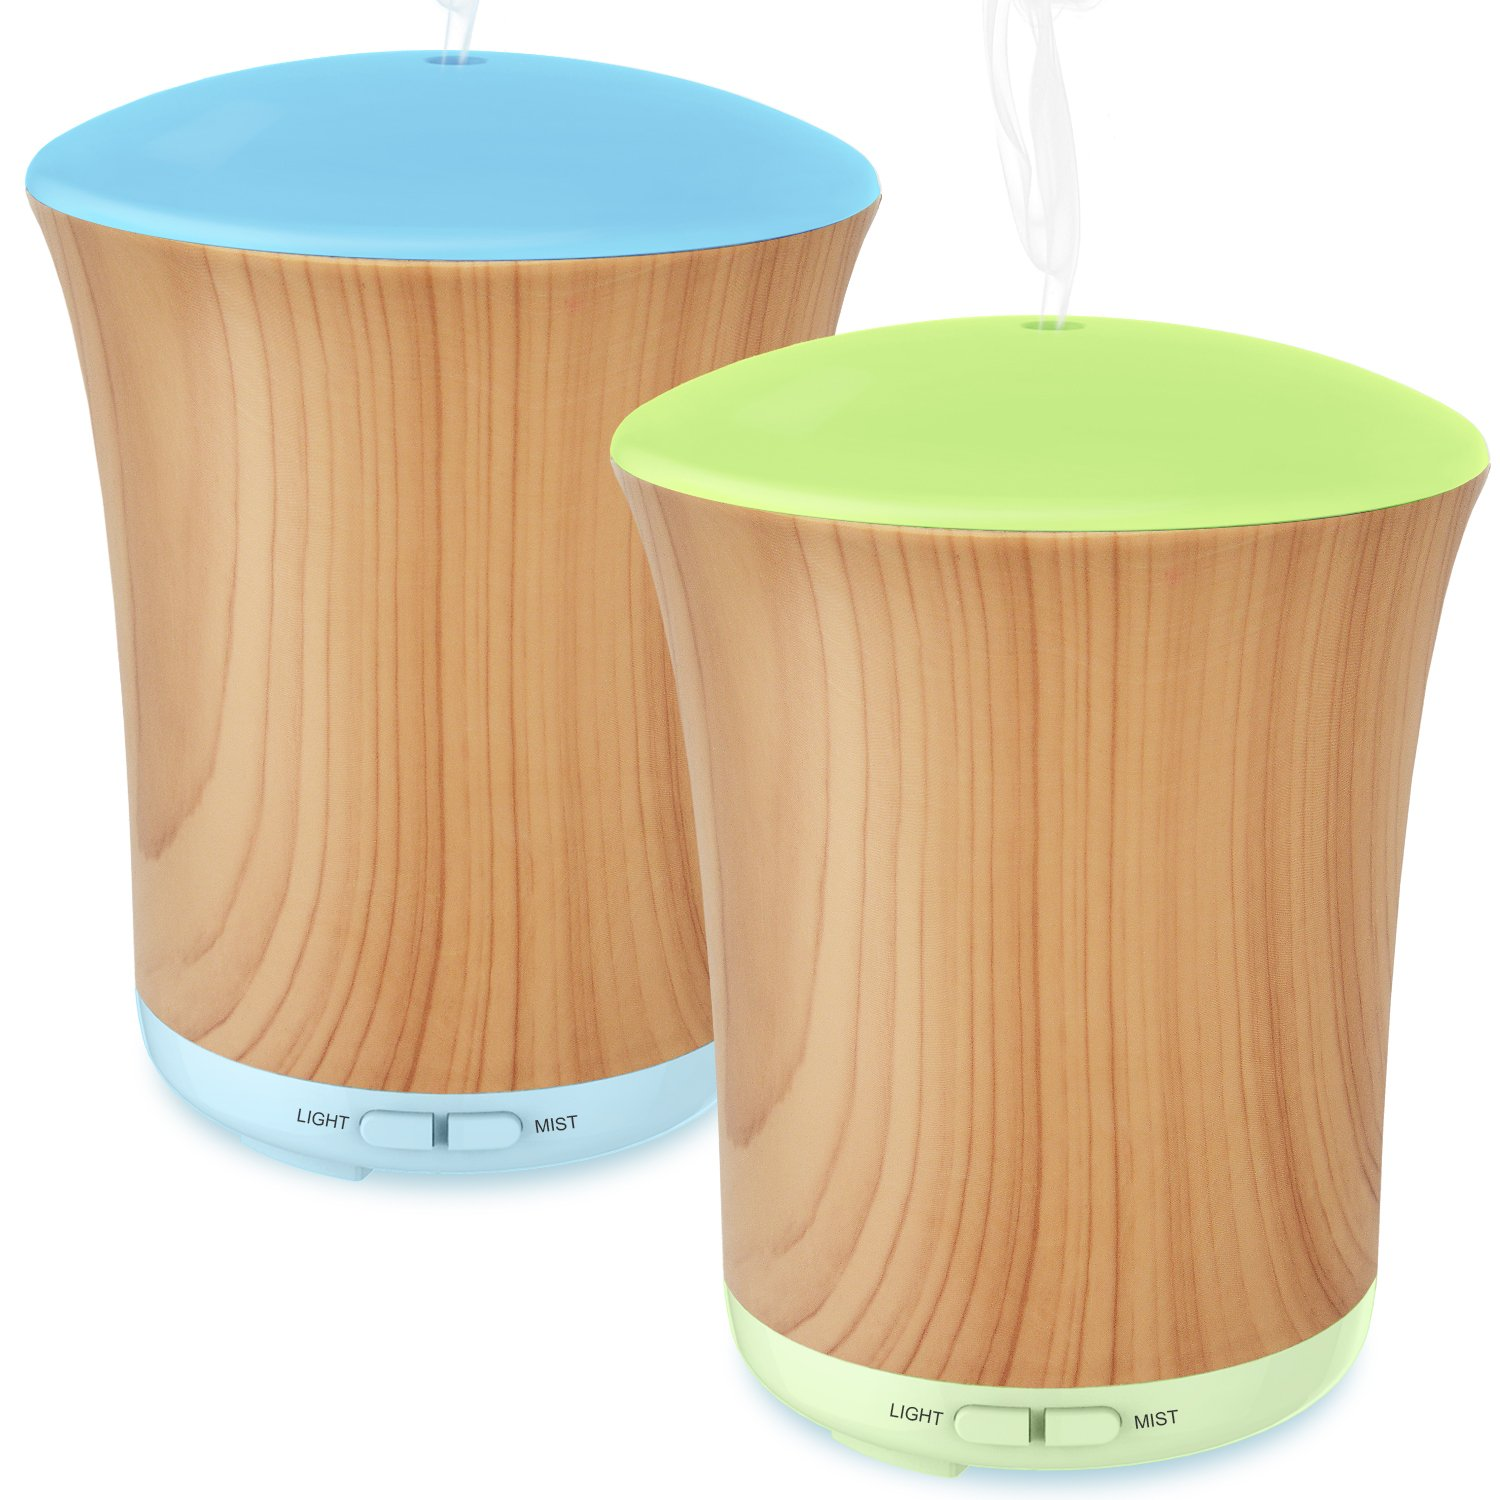 Essential Oil Diffuser, 2 Pack ZOOKKI 200ml Wood Grain Aroma Diffuser Ultrasonic Cool Humidifier with Changeable 8 Color LED and Waterless Auto Shut-Off for Home Office Baby